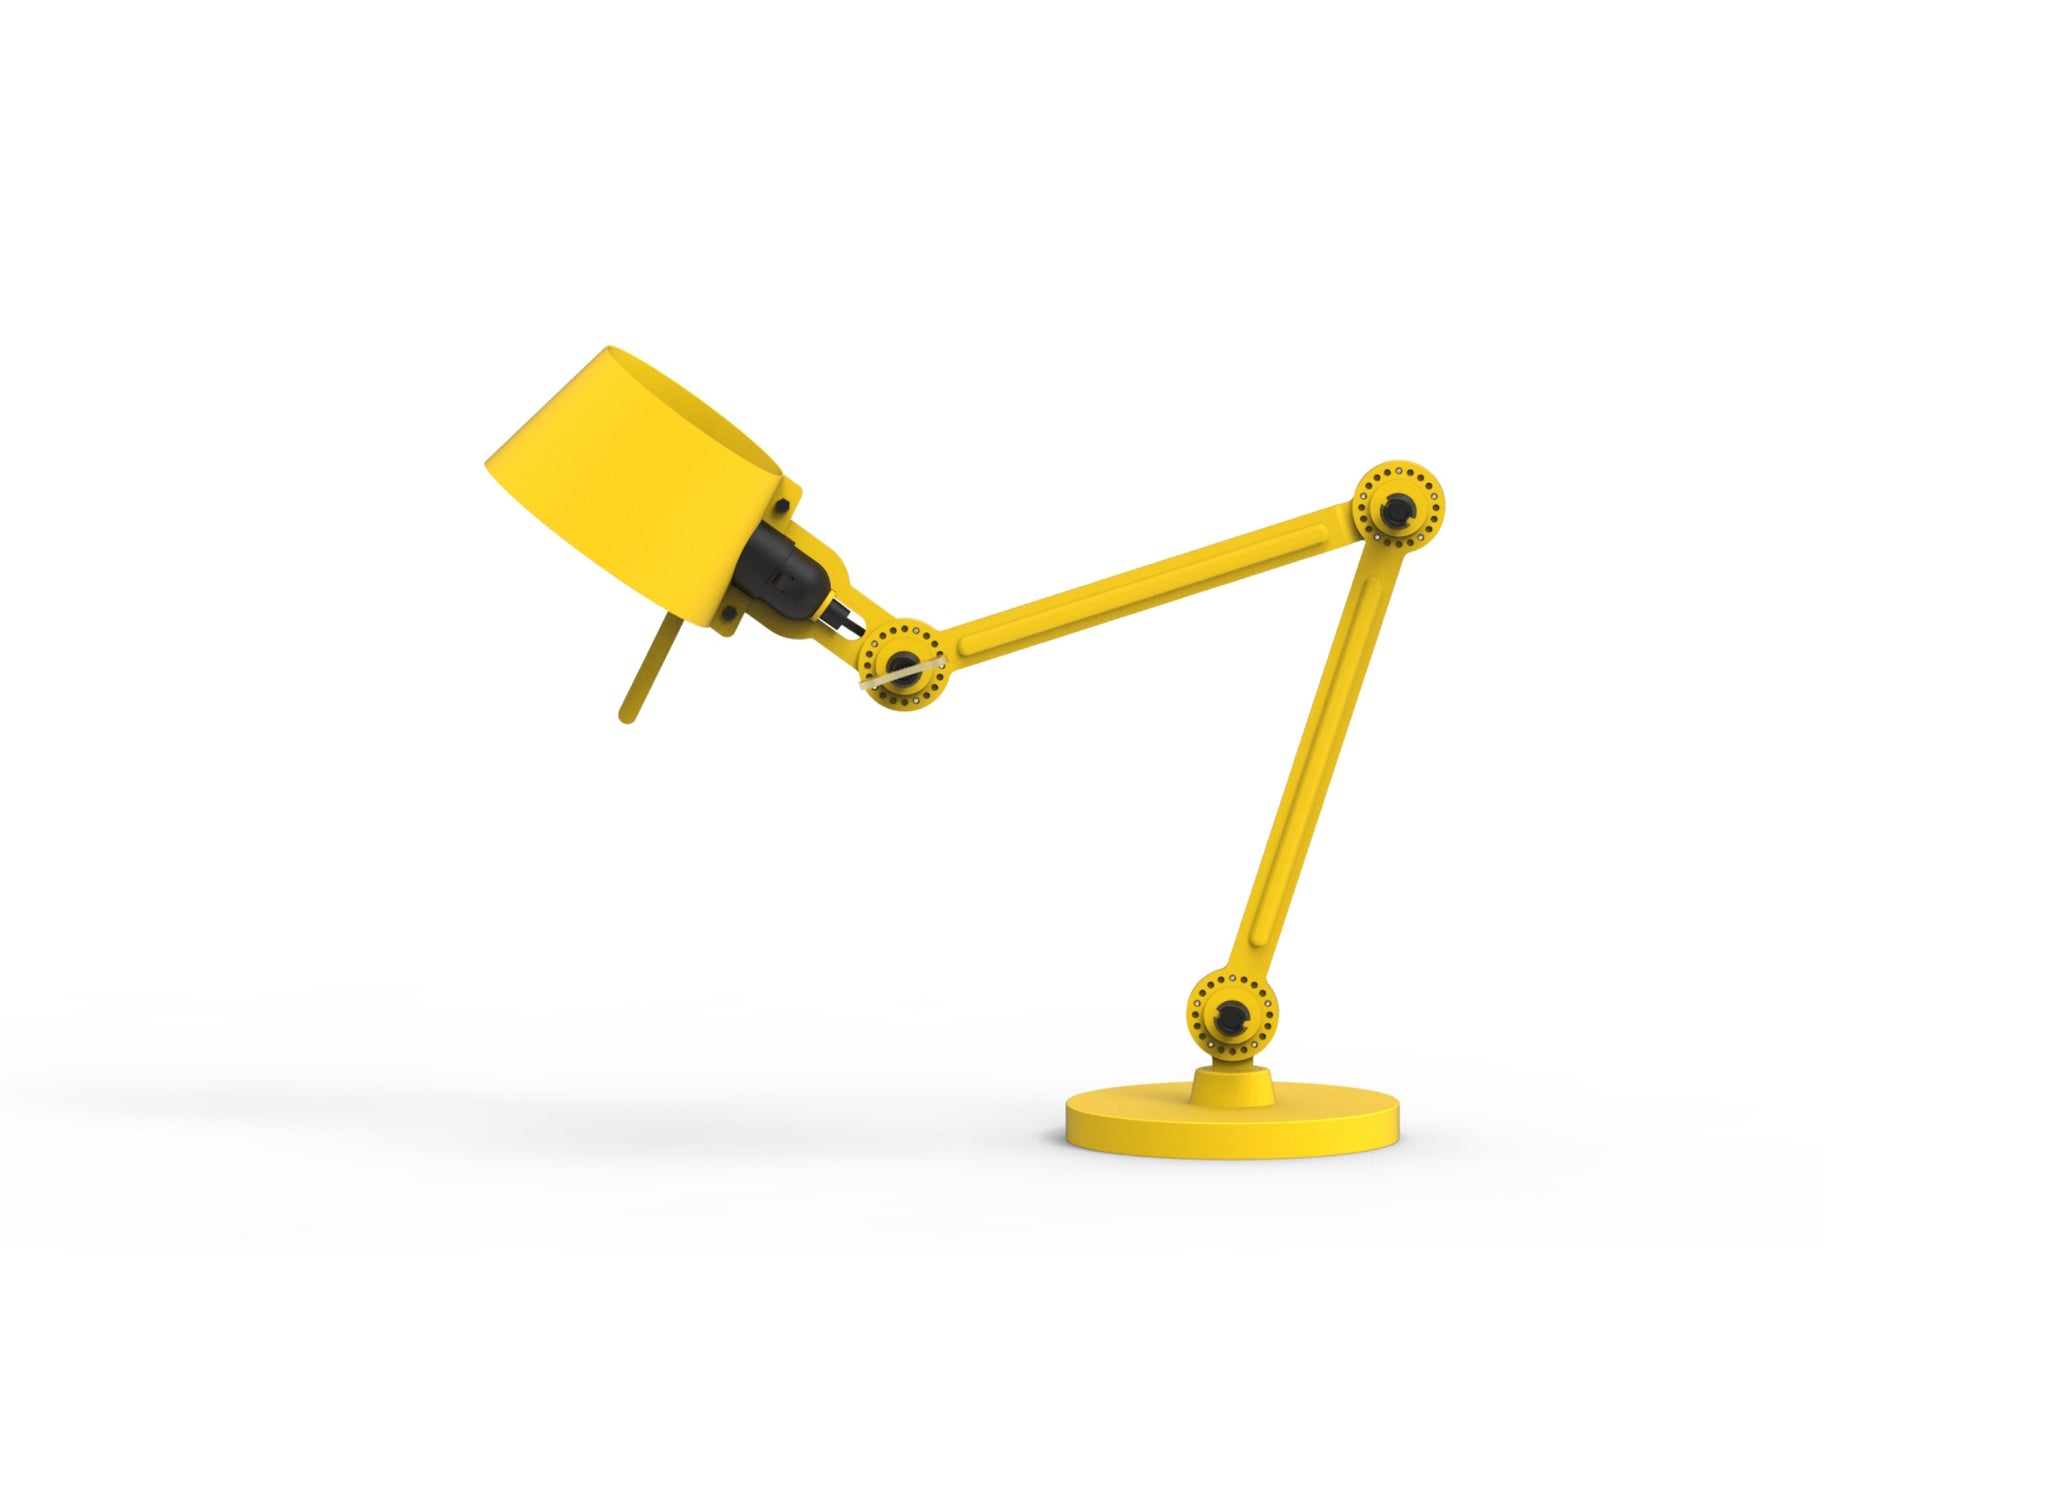 Bolt 2Arm Small Desk Lamp with Foot